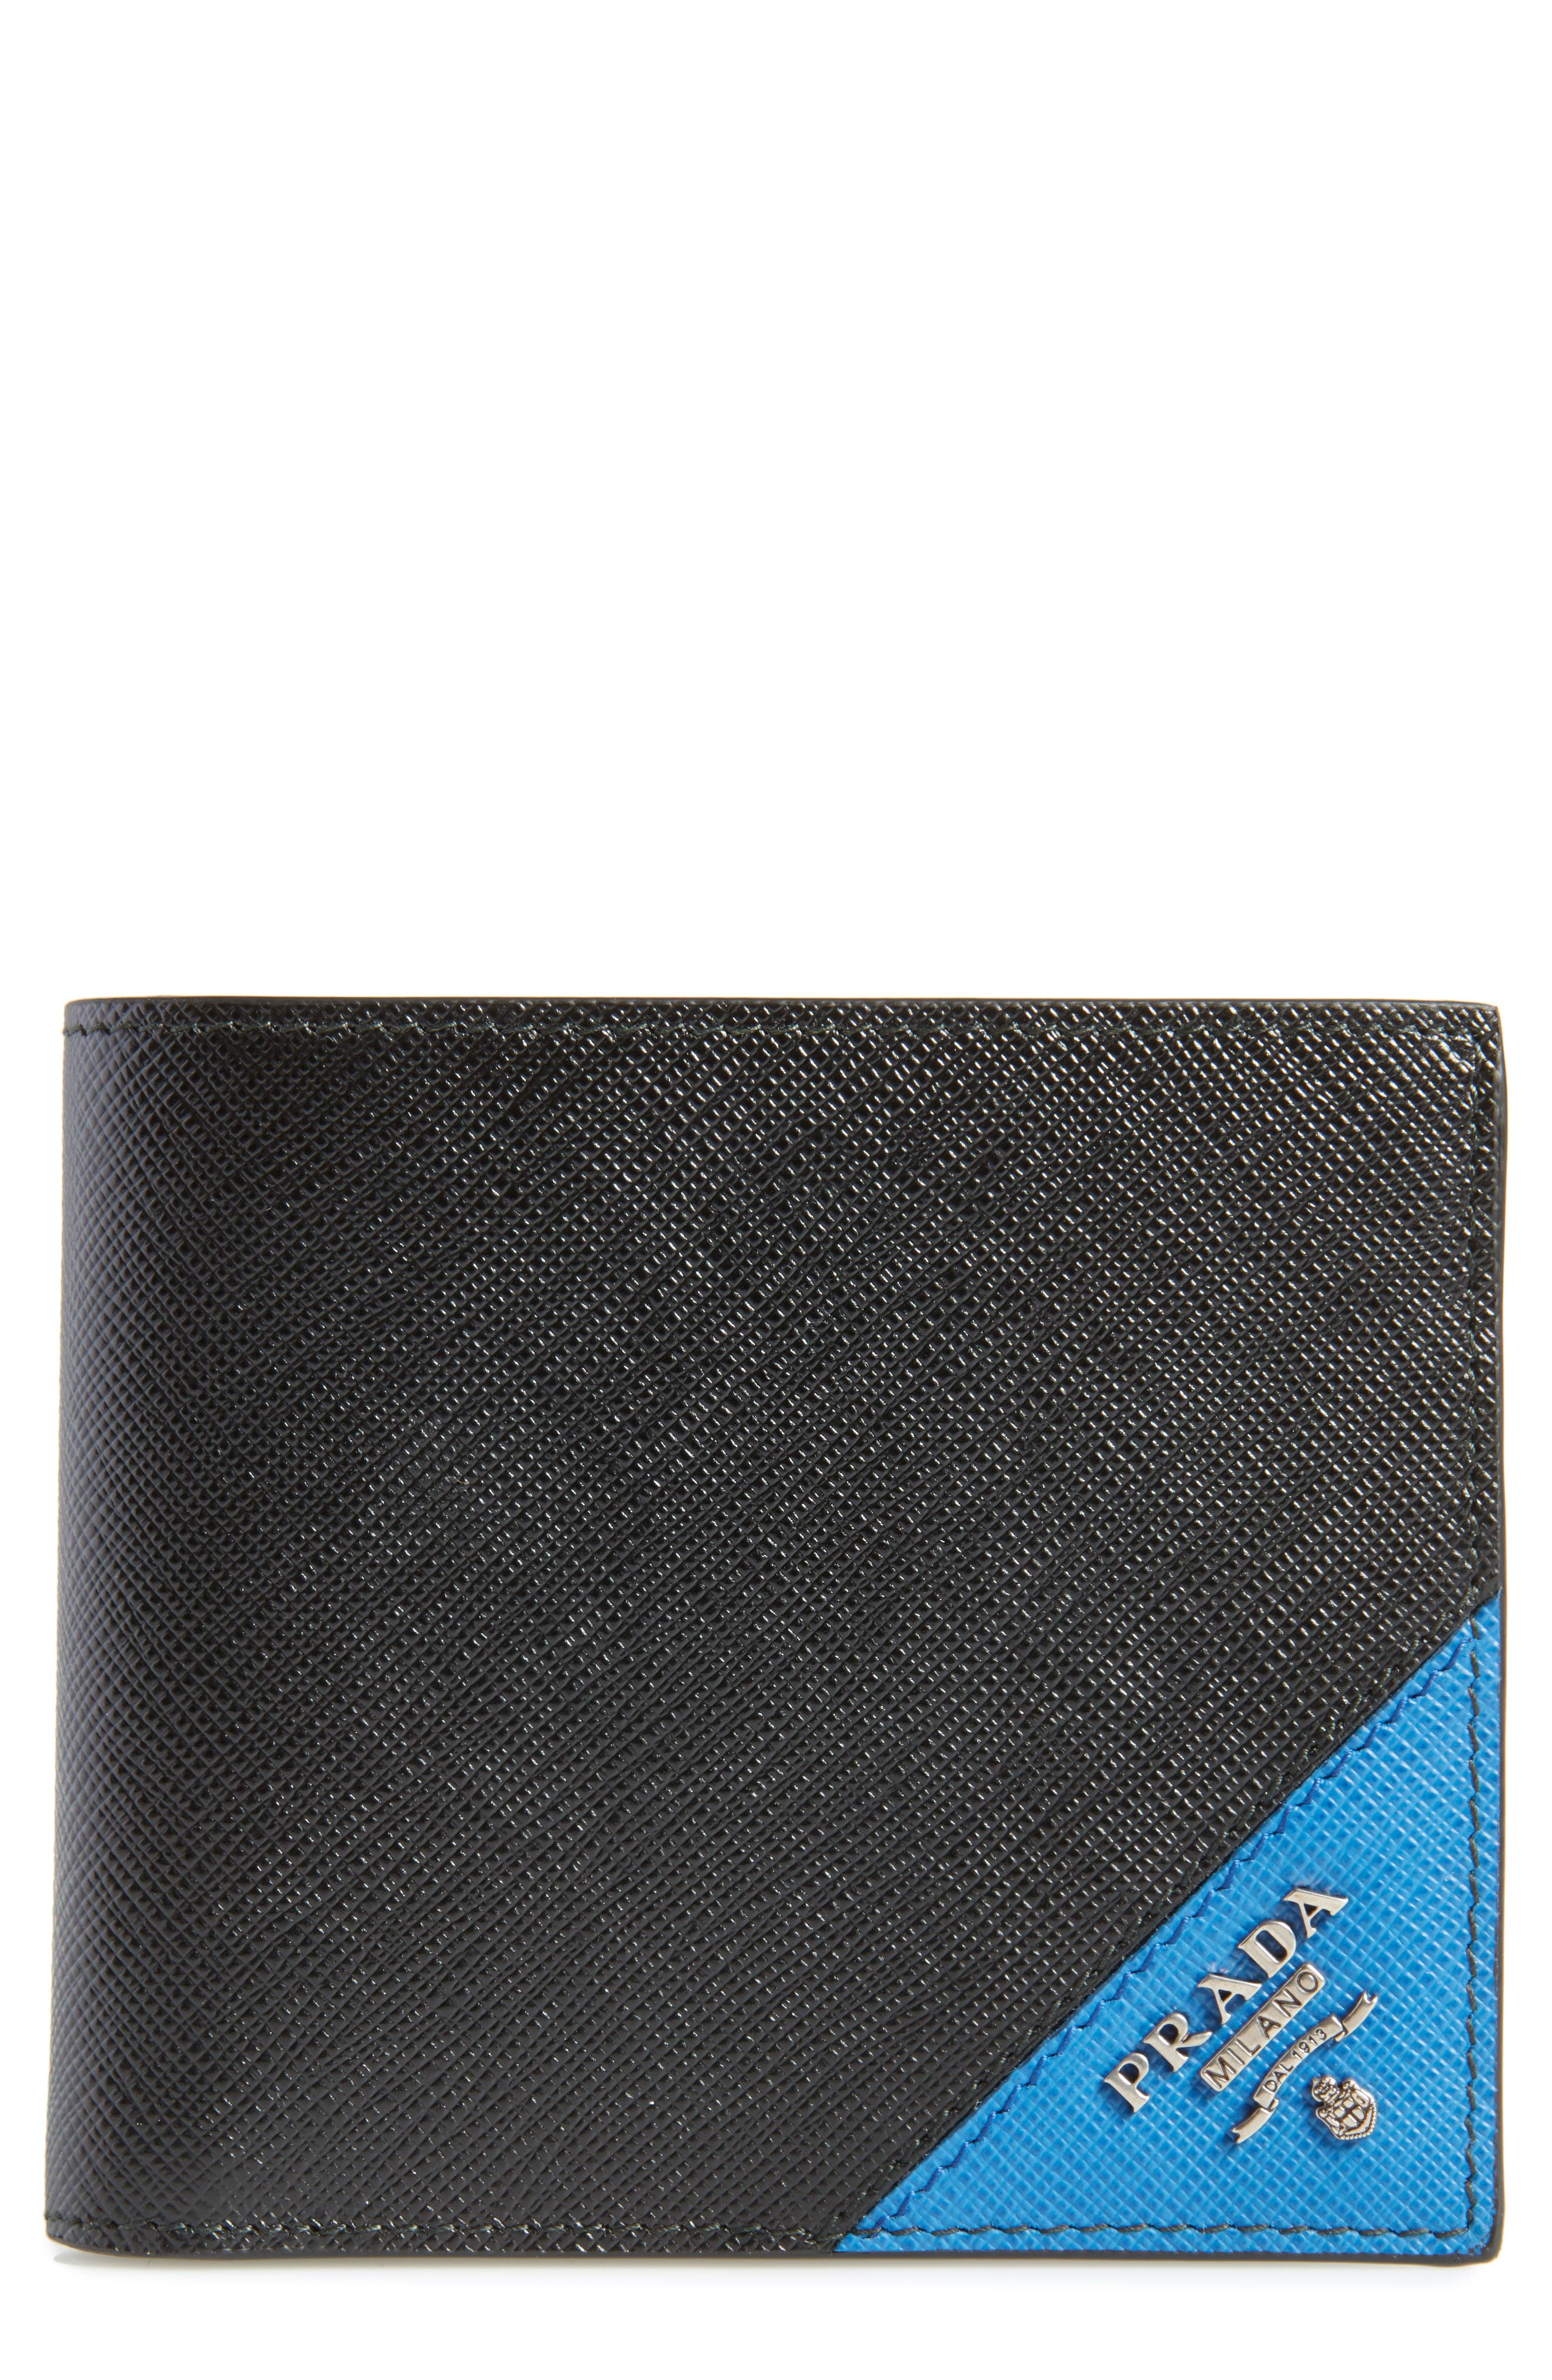 Alternate Image 1 Selected - Prada Saffiano Leather Billfold Wallet